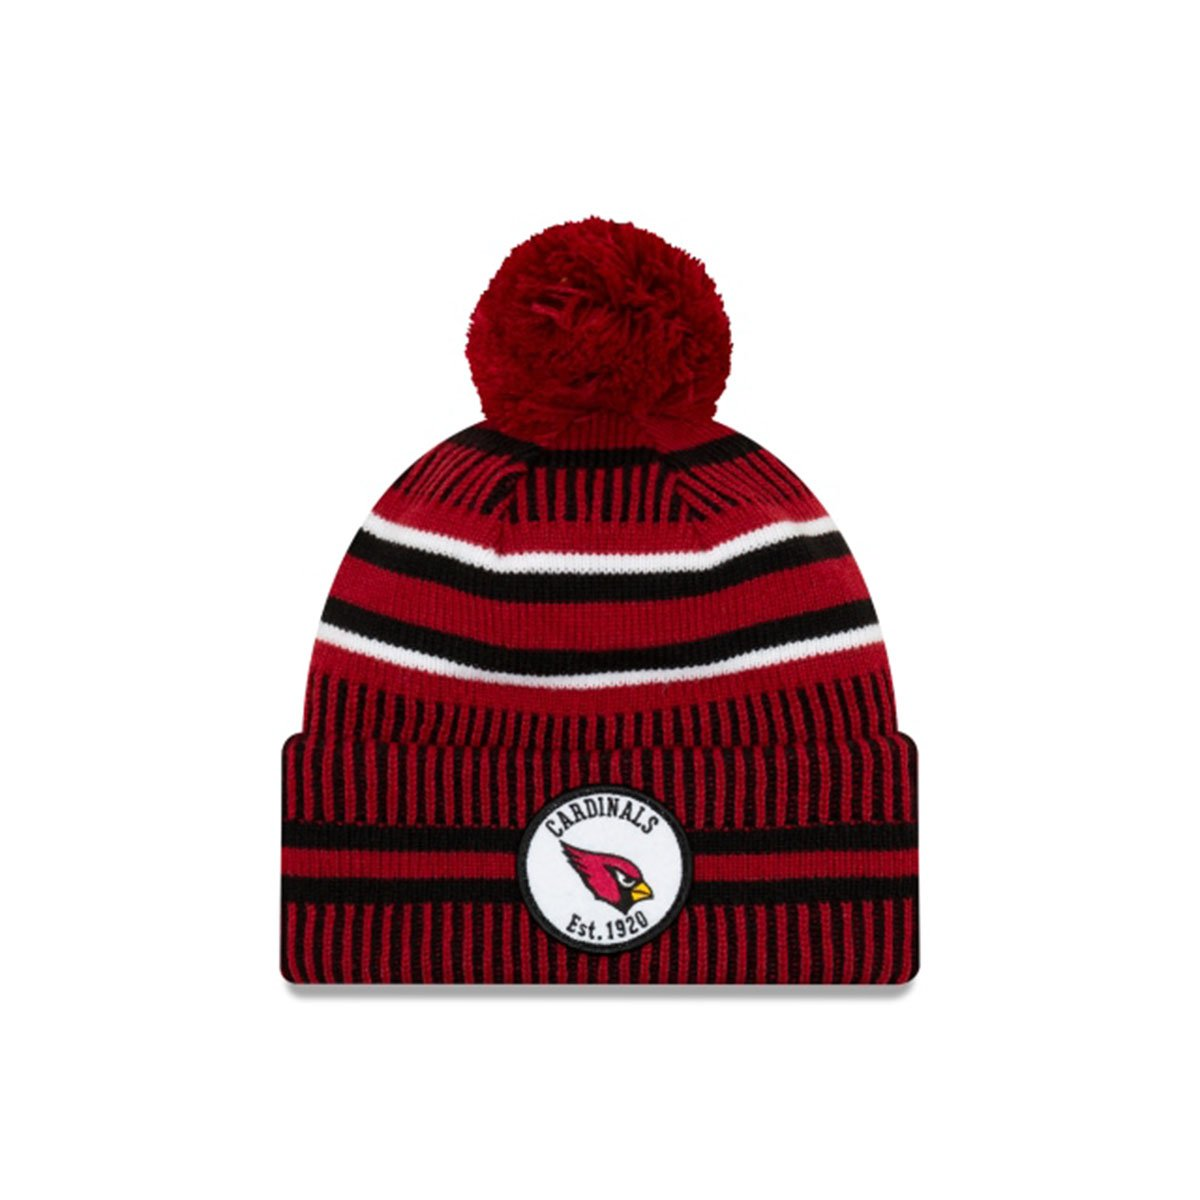 ARIZONA CARDINALS ARIZONA CARDINALS OFFICIAL NFL SIDELINE HOME SPORT KNIT RED/BLACK